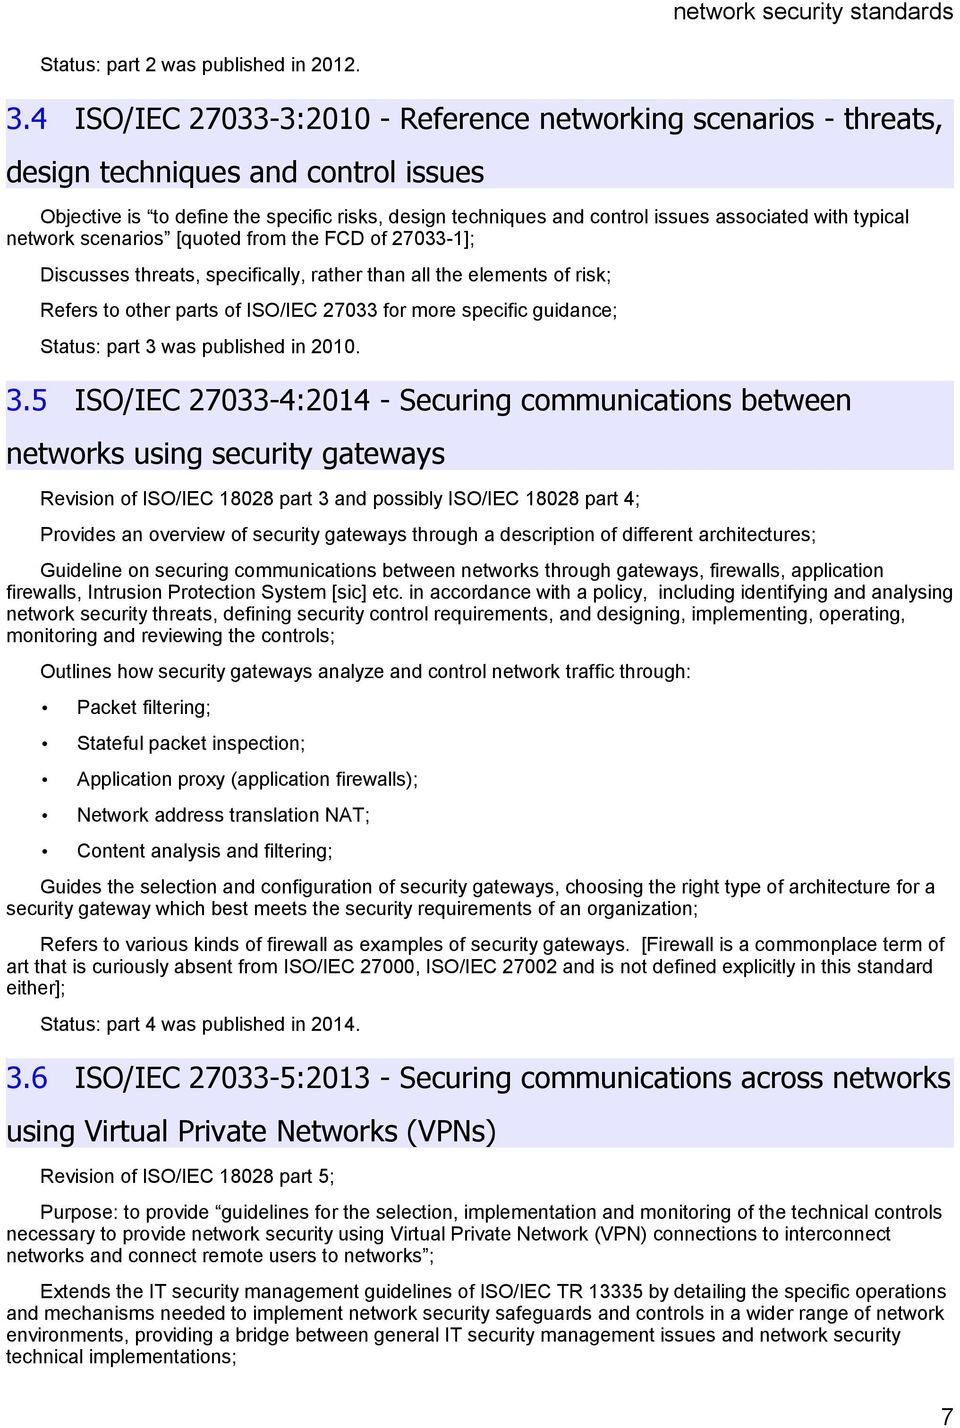 typical network scenarios [quoted from the FCD of 27033-1]; Discusses threats, specifically, rather than all the elements of risk; Refers to other parts of ISO/IEC 27033 for more specific guidance;